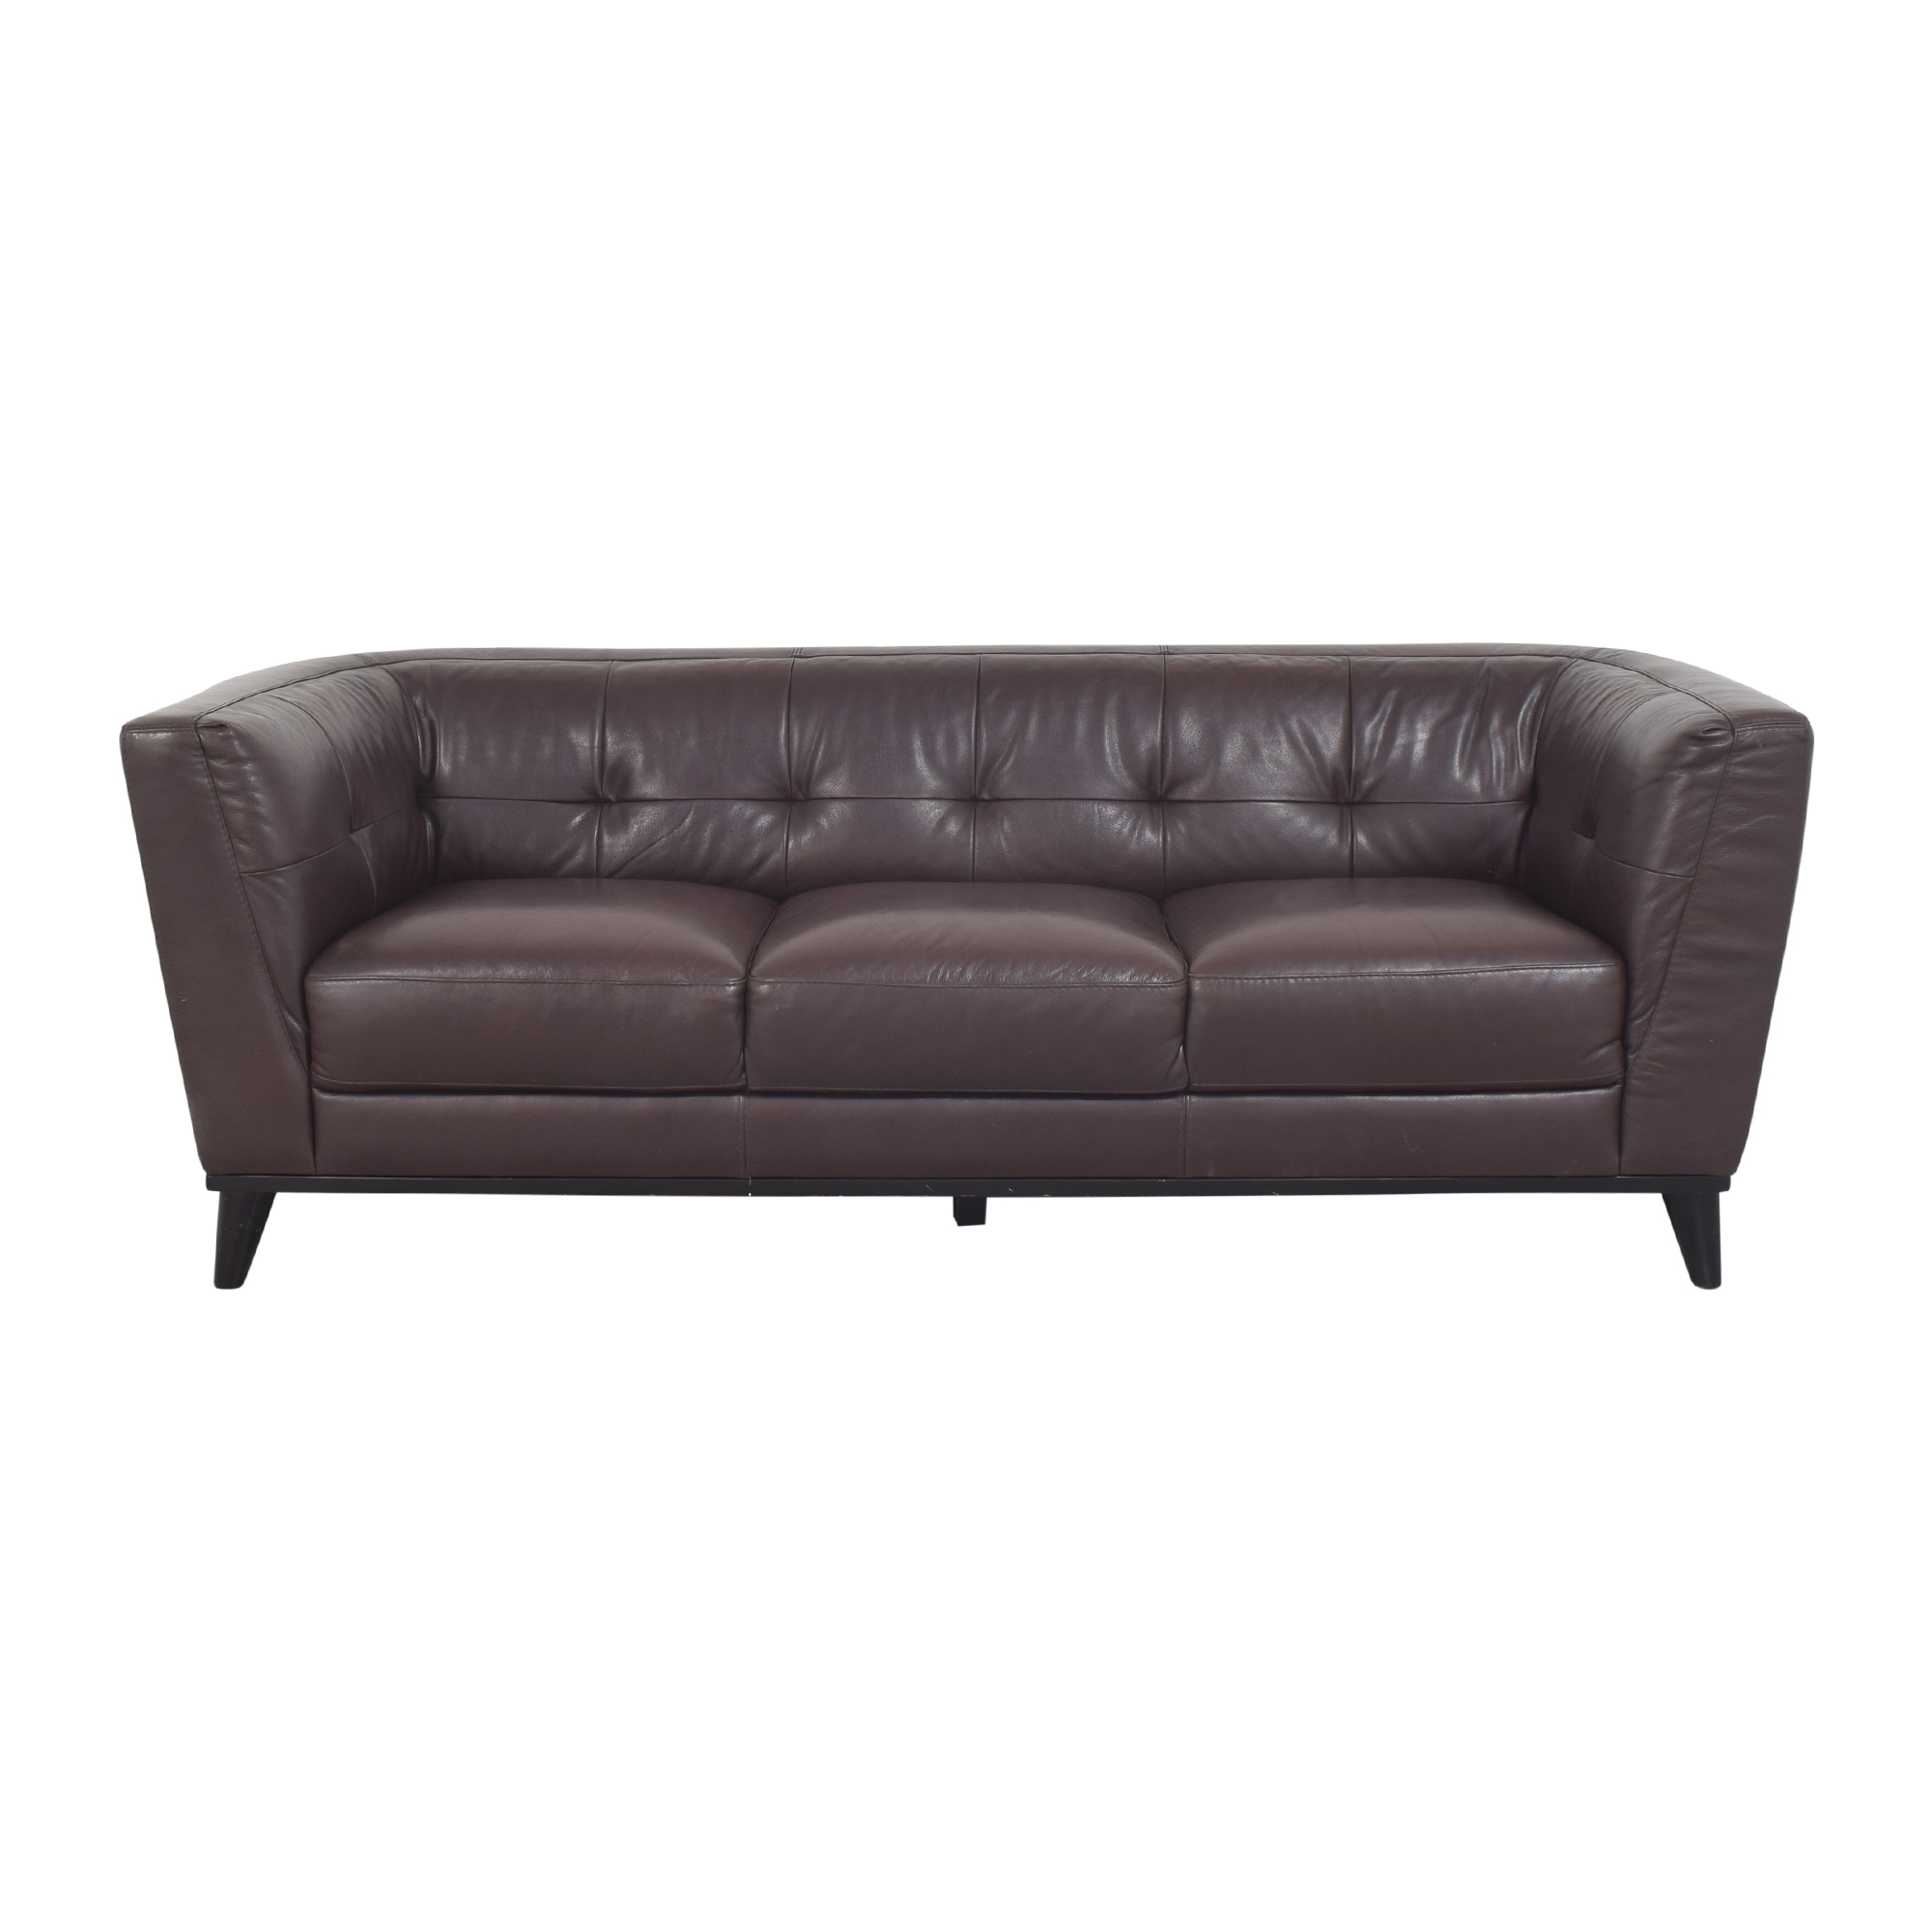 Chateau d'Ax Tufted Three Cushion Sofa / Sofas